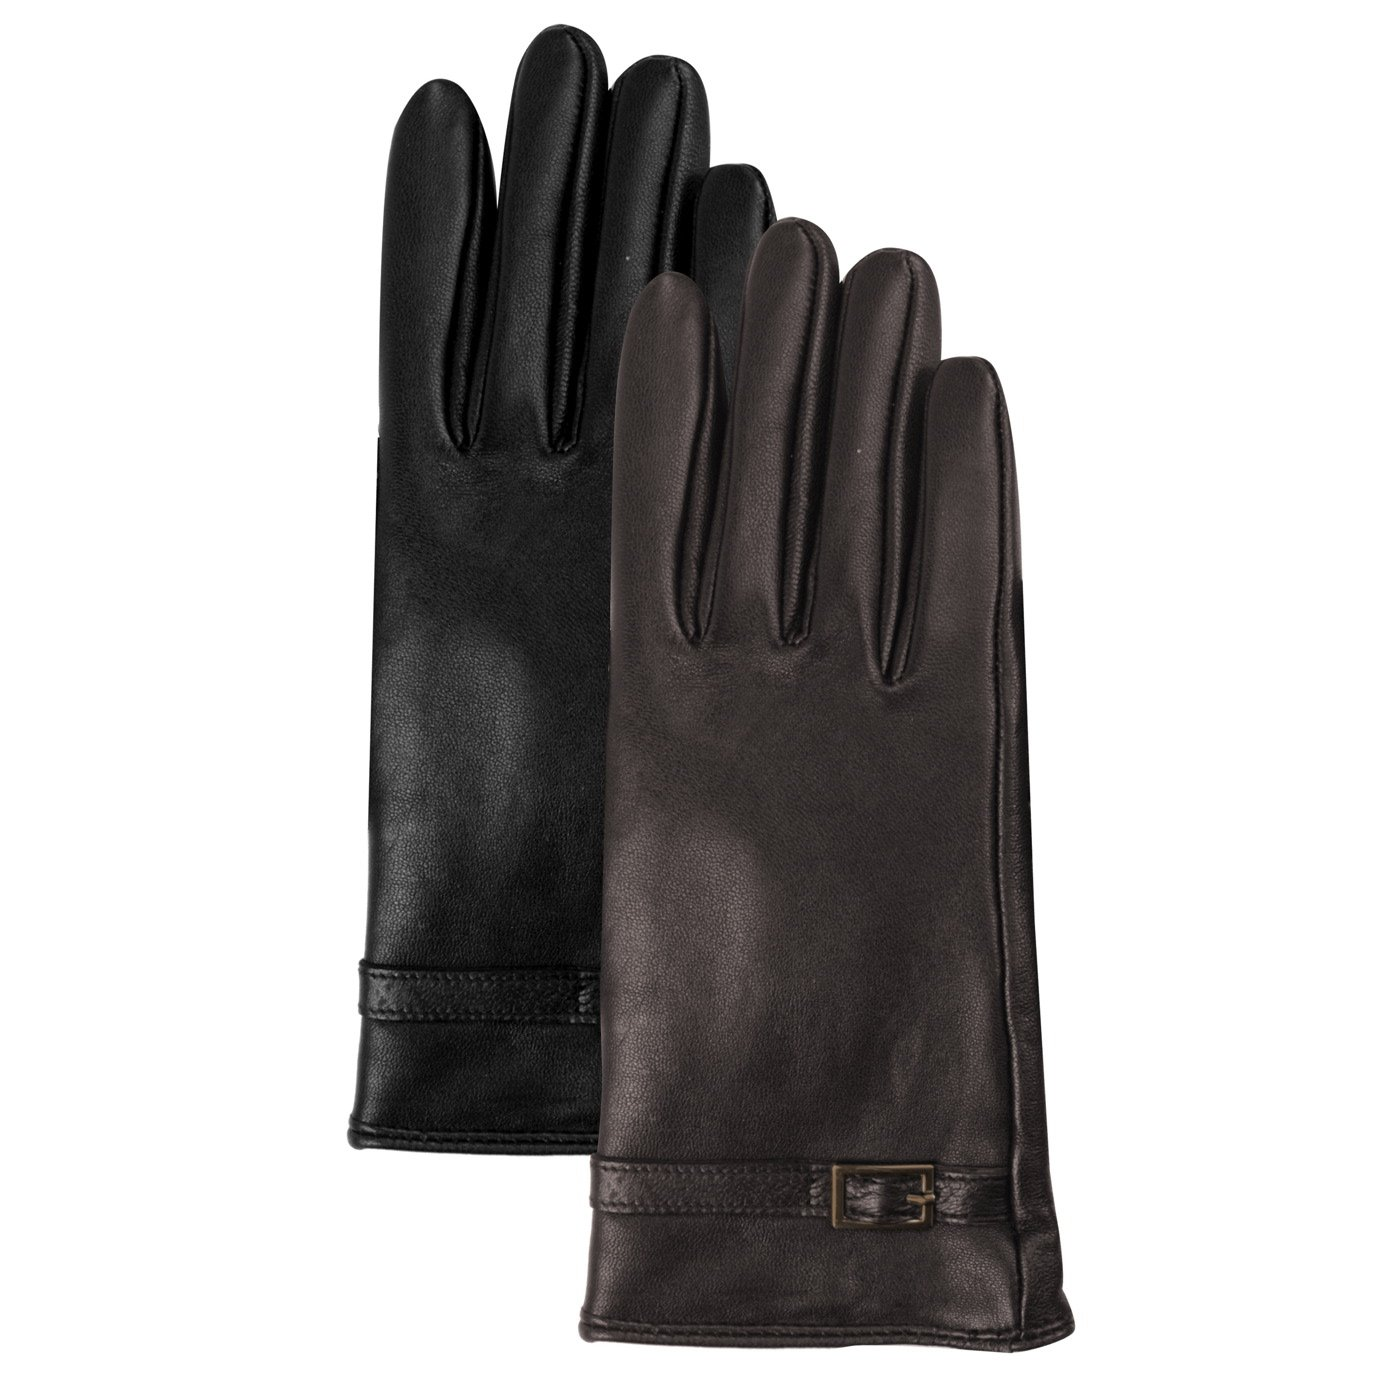 Luxury Lane Women's Cashmere Lined Lambskin Leather Gloves with Buckle - Chocolate Medium